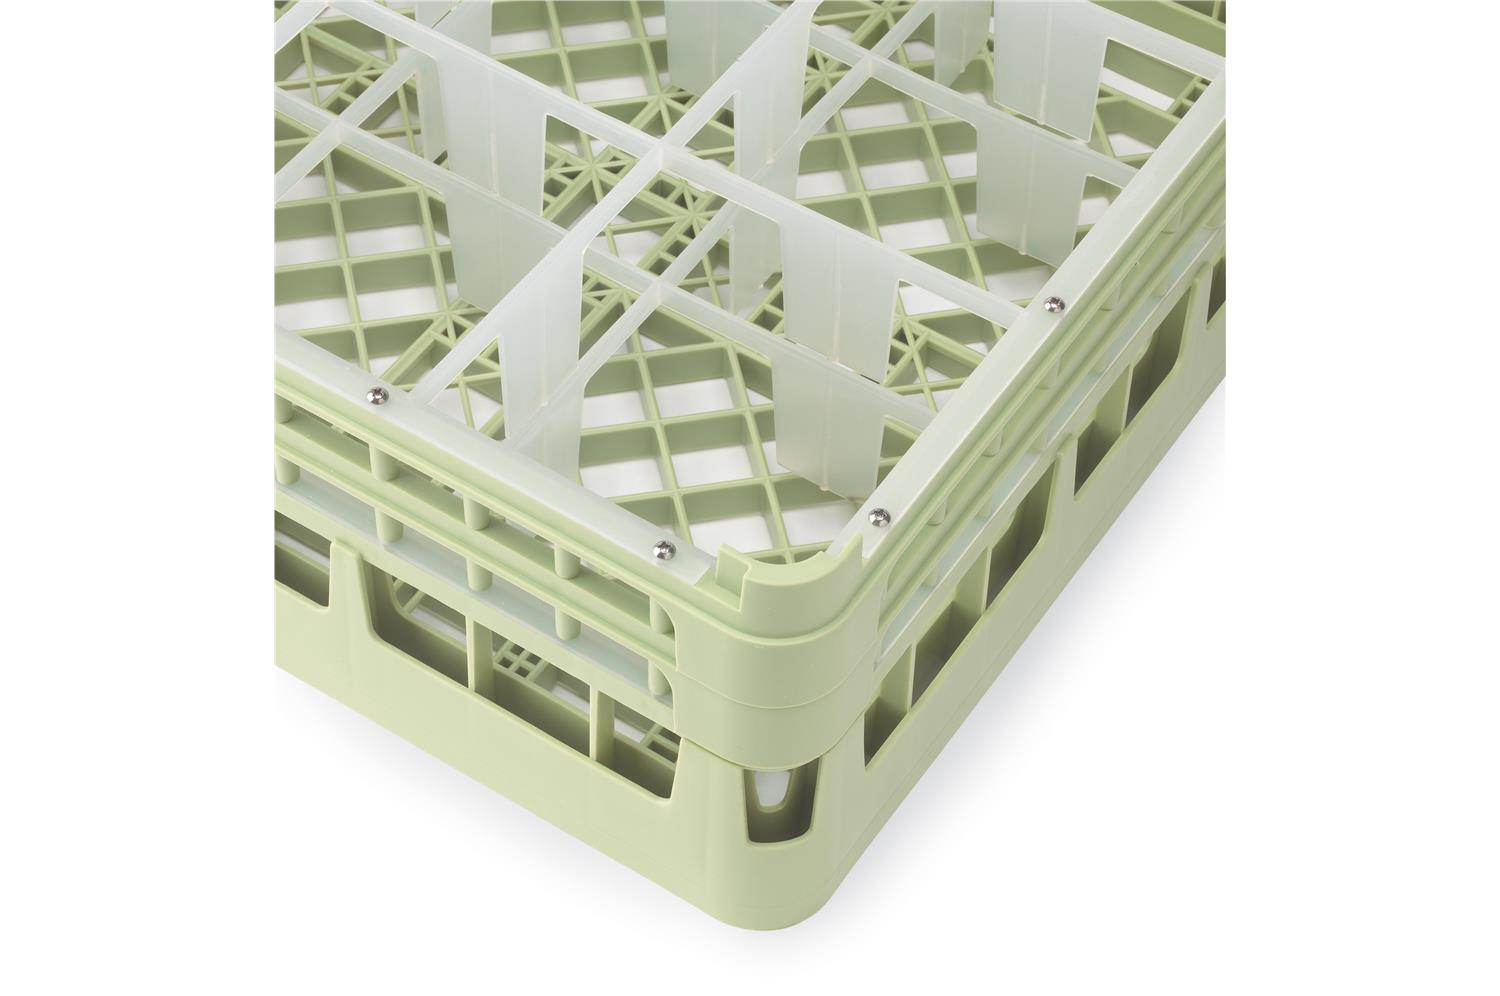 Vollrath 5231480 18-compartment divider - half size